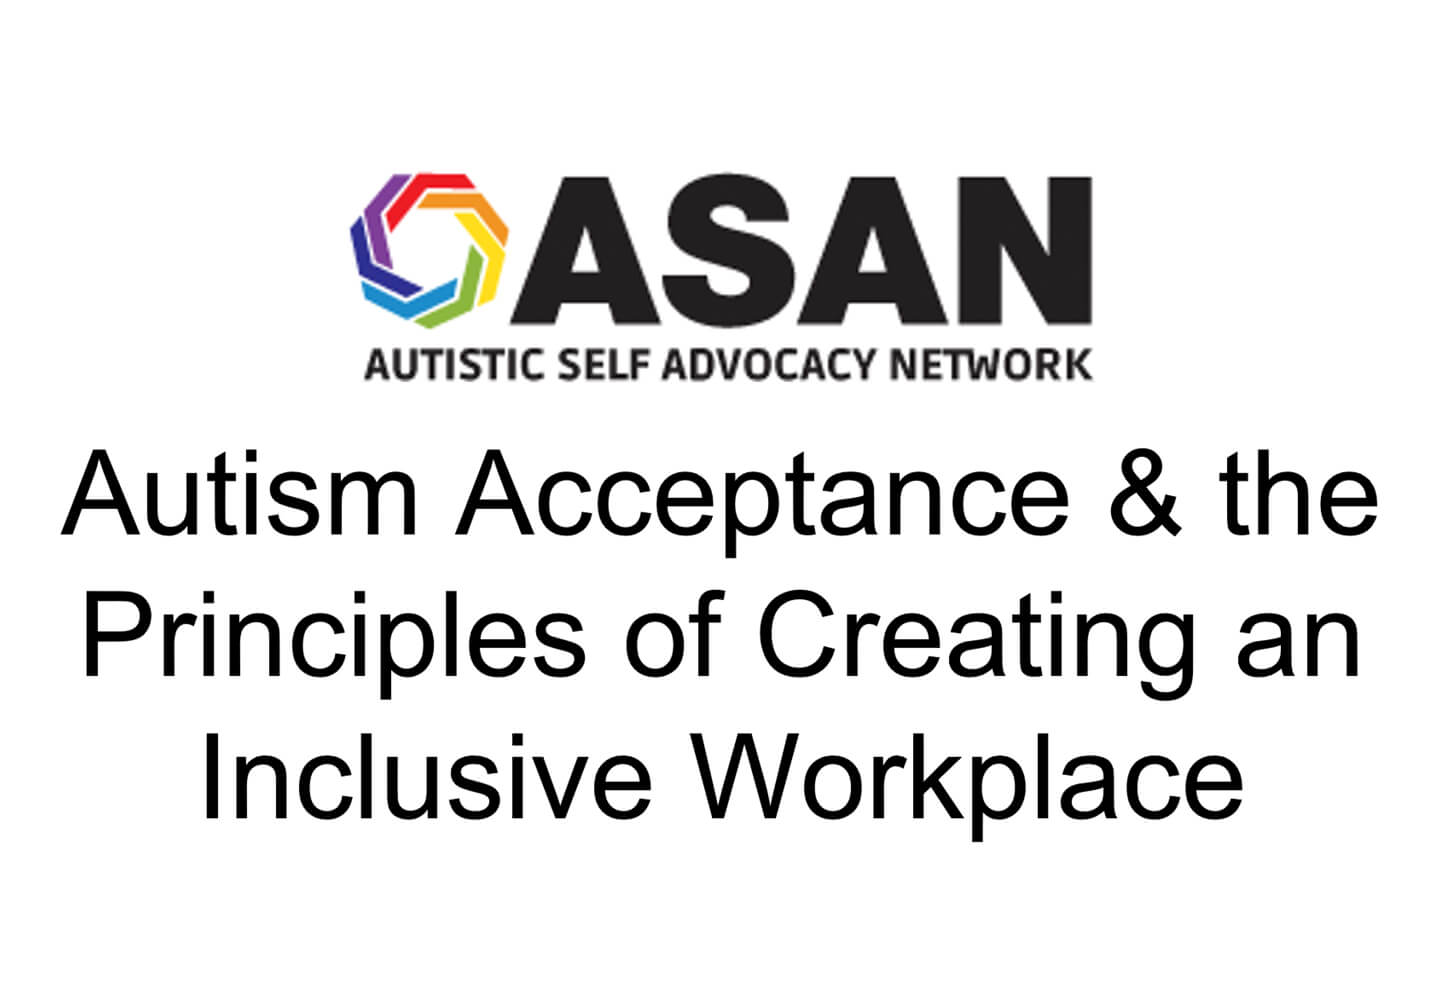 Autism Acceptance & the principles of creating an inclusive workplace